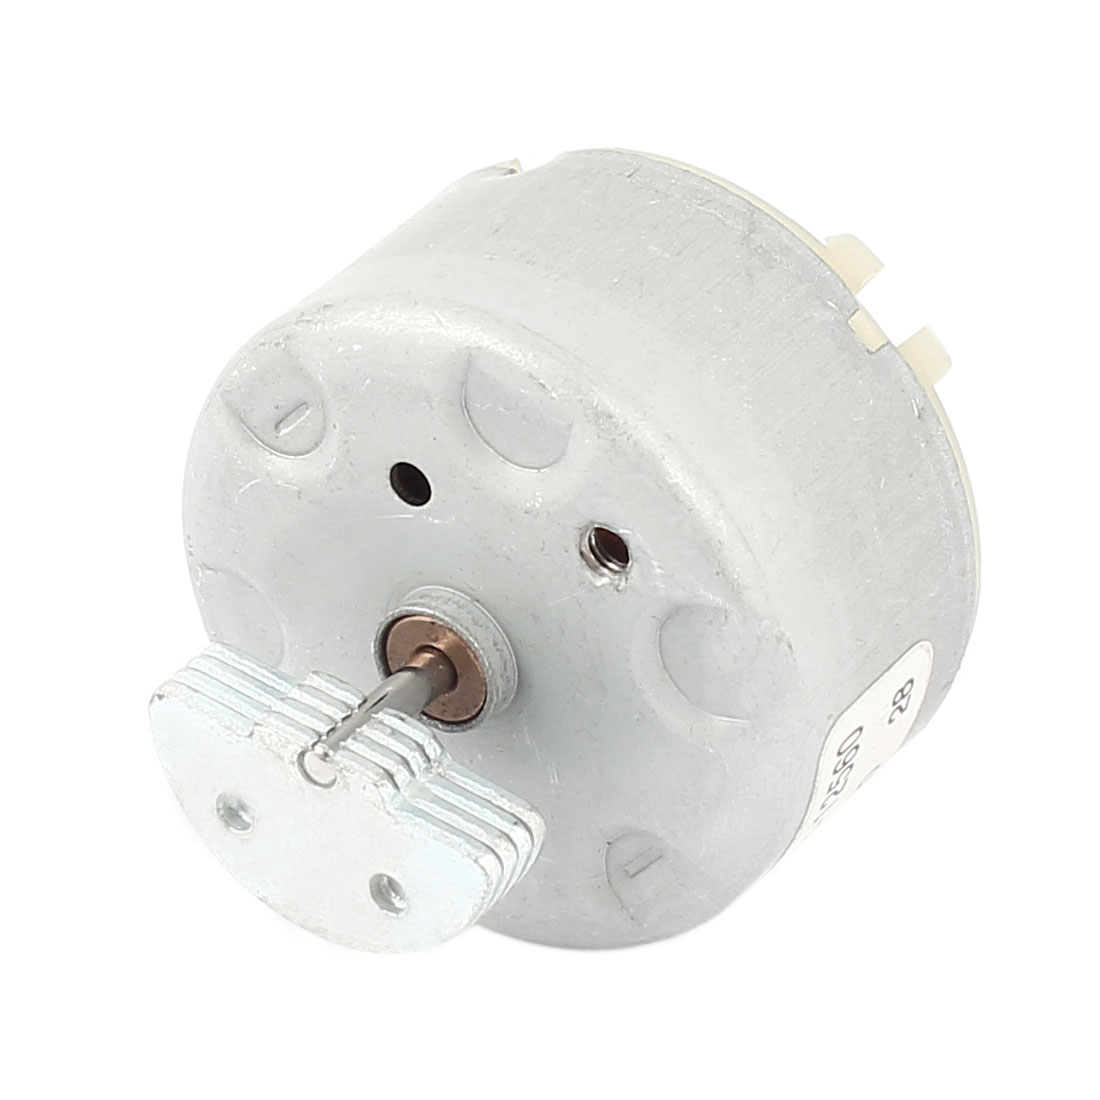 Multi Layer Eccentric 18000RPM 3-12V Round Shape DC Miniature Vibration Motor